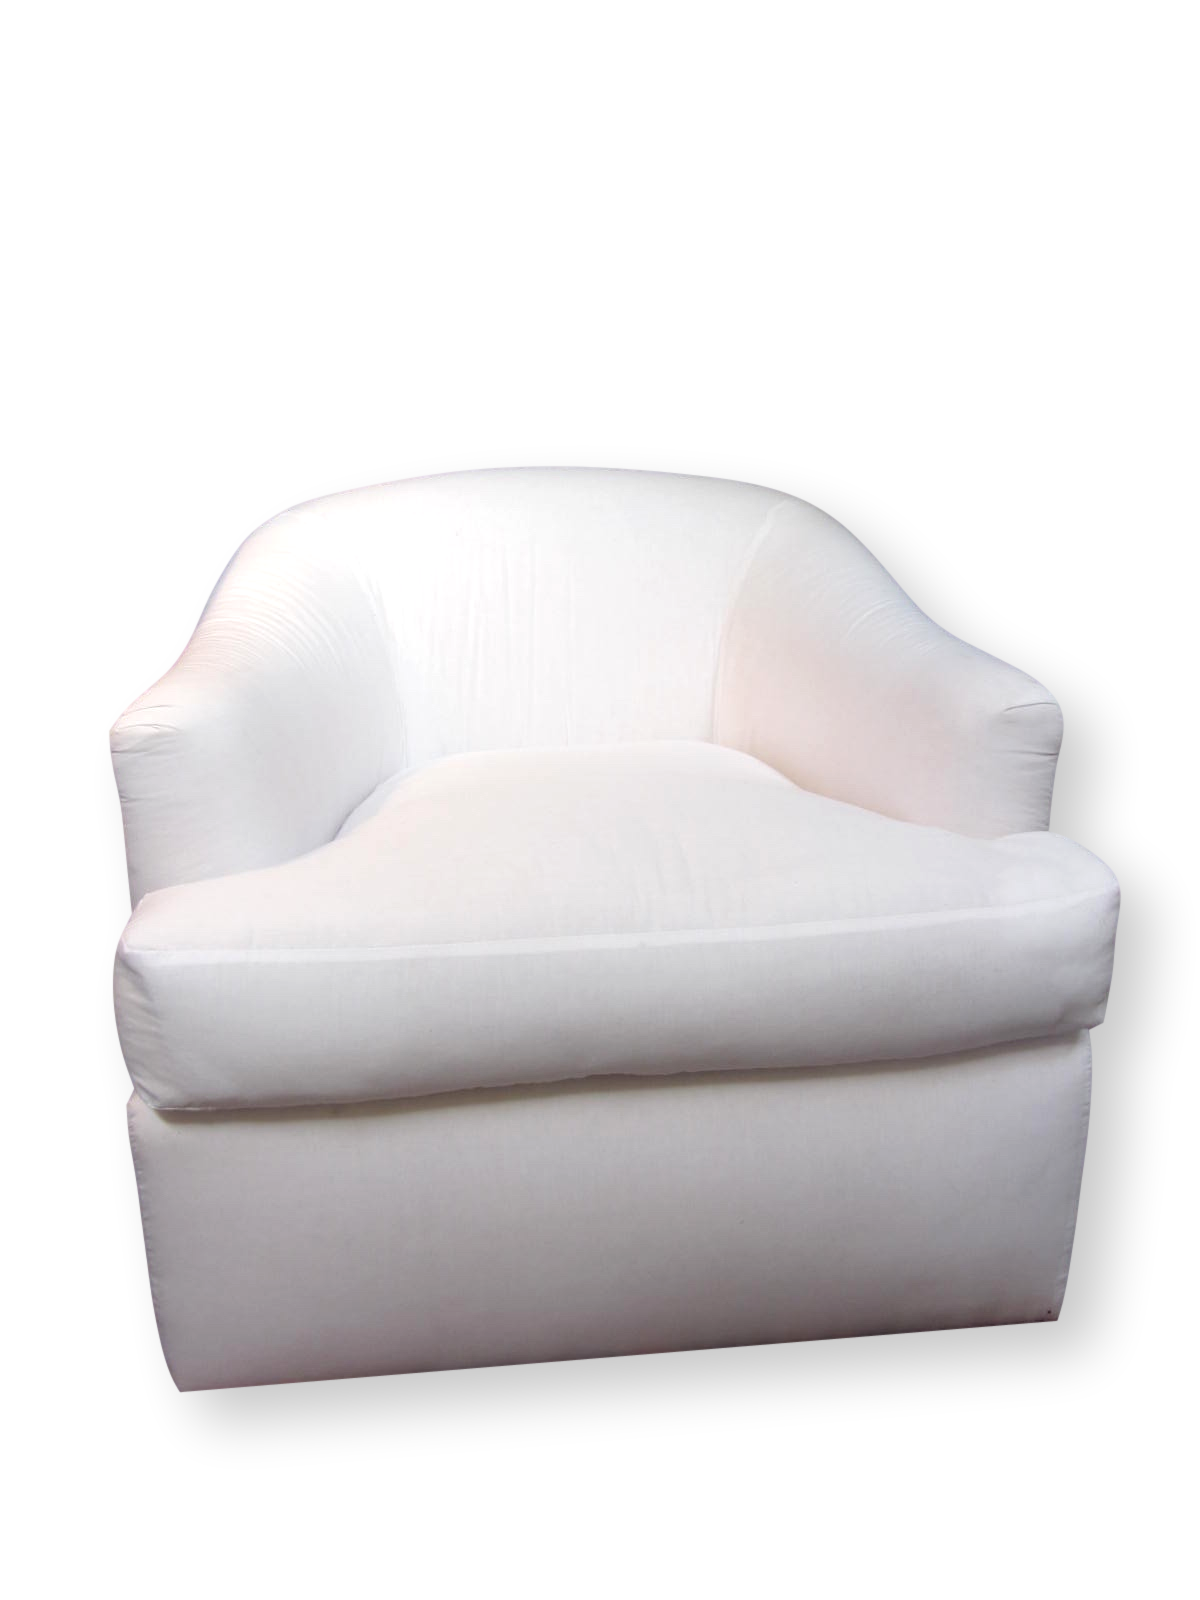 Shown here in a simple white muslin these A. Rudin. Contemporary A. Rudin Swivel Chairs ...  sc 1 st  Chairish & A. Rudin Swivel Chairs u0026 Ottoman | Chairish